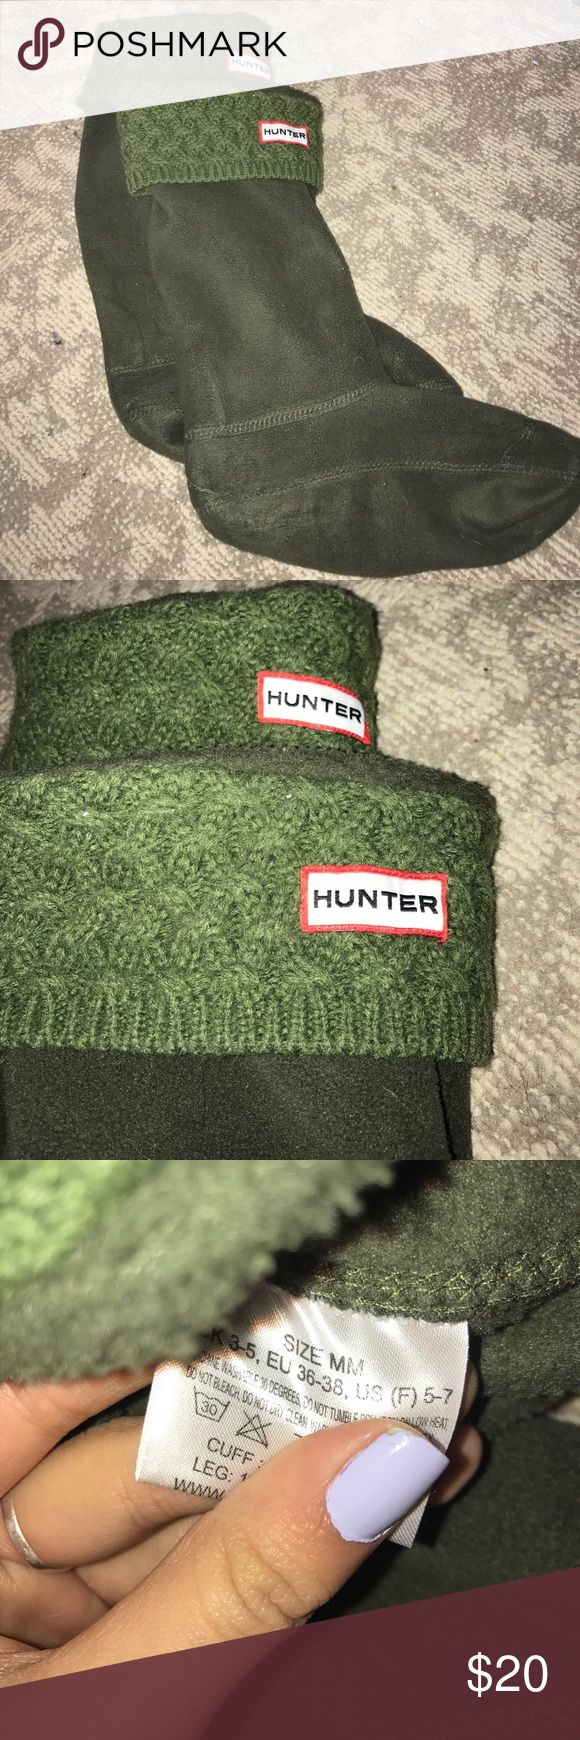 Green Hunter socks Perfect to keep your feet warm. For reference I'm a size 6 and these fit Hunter Boots Accessories